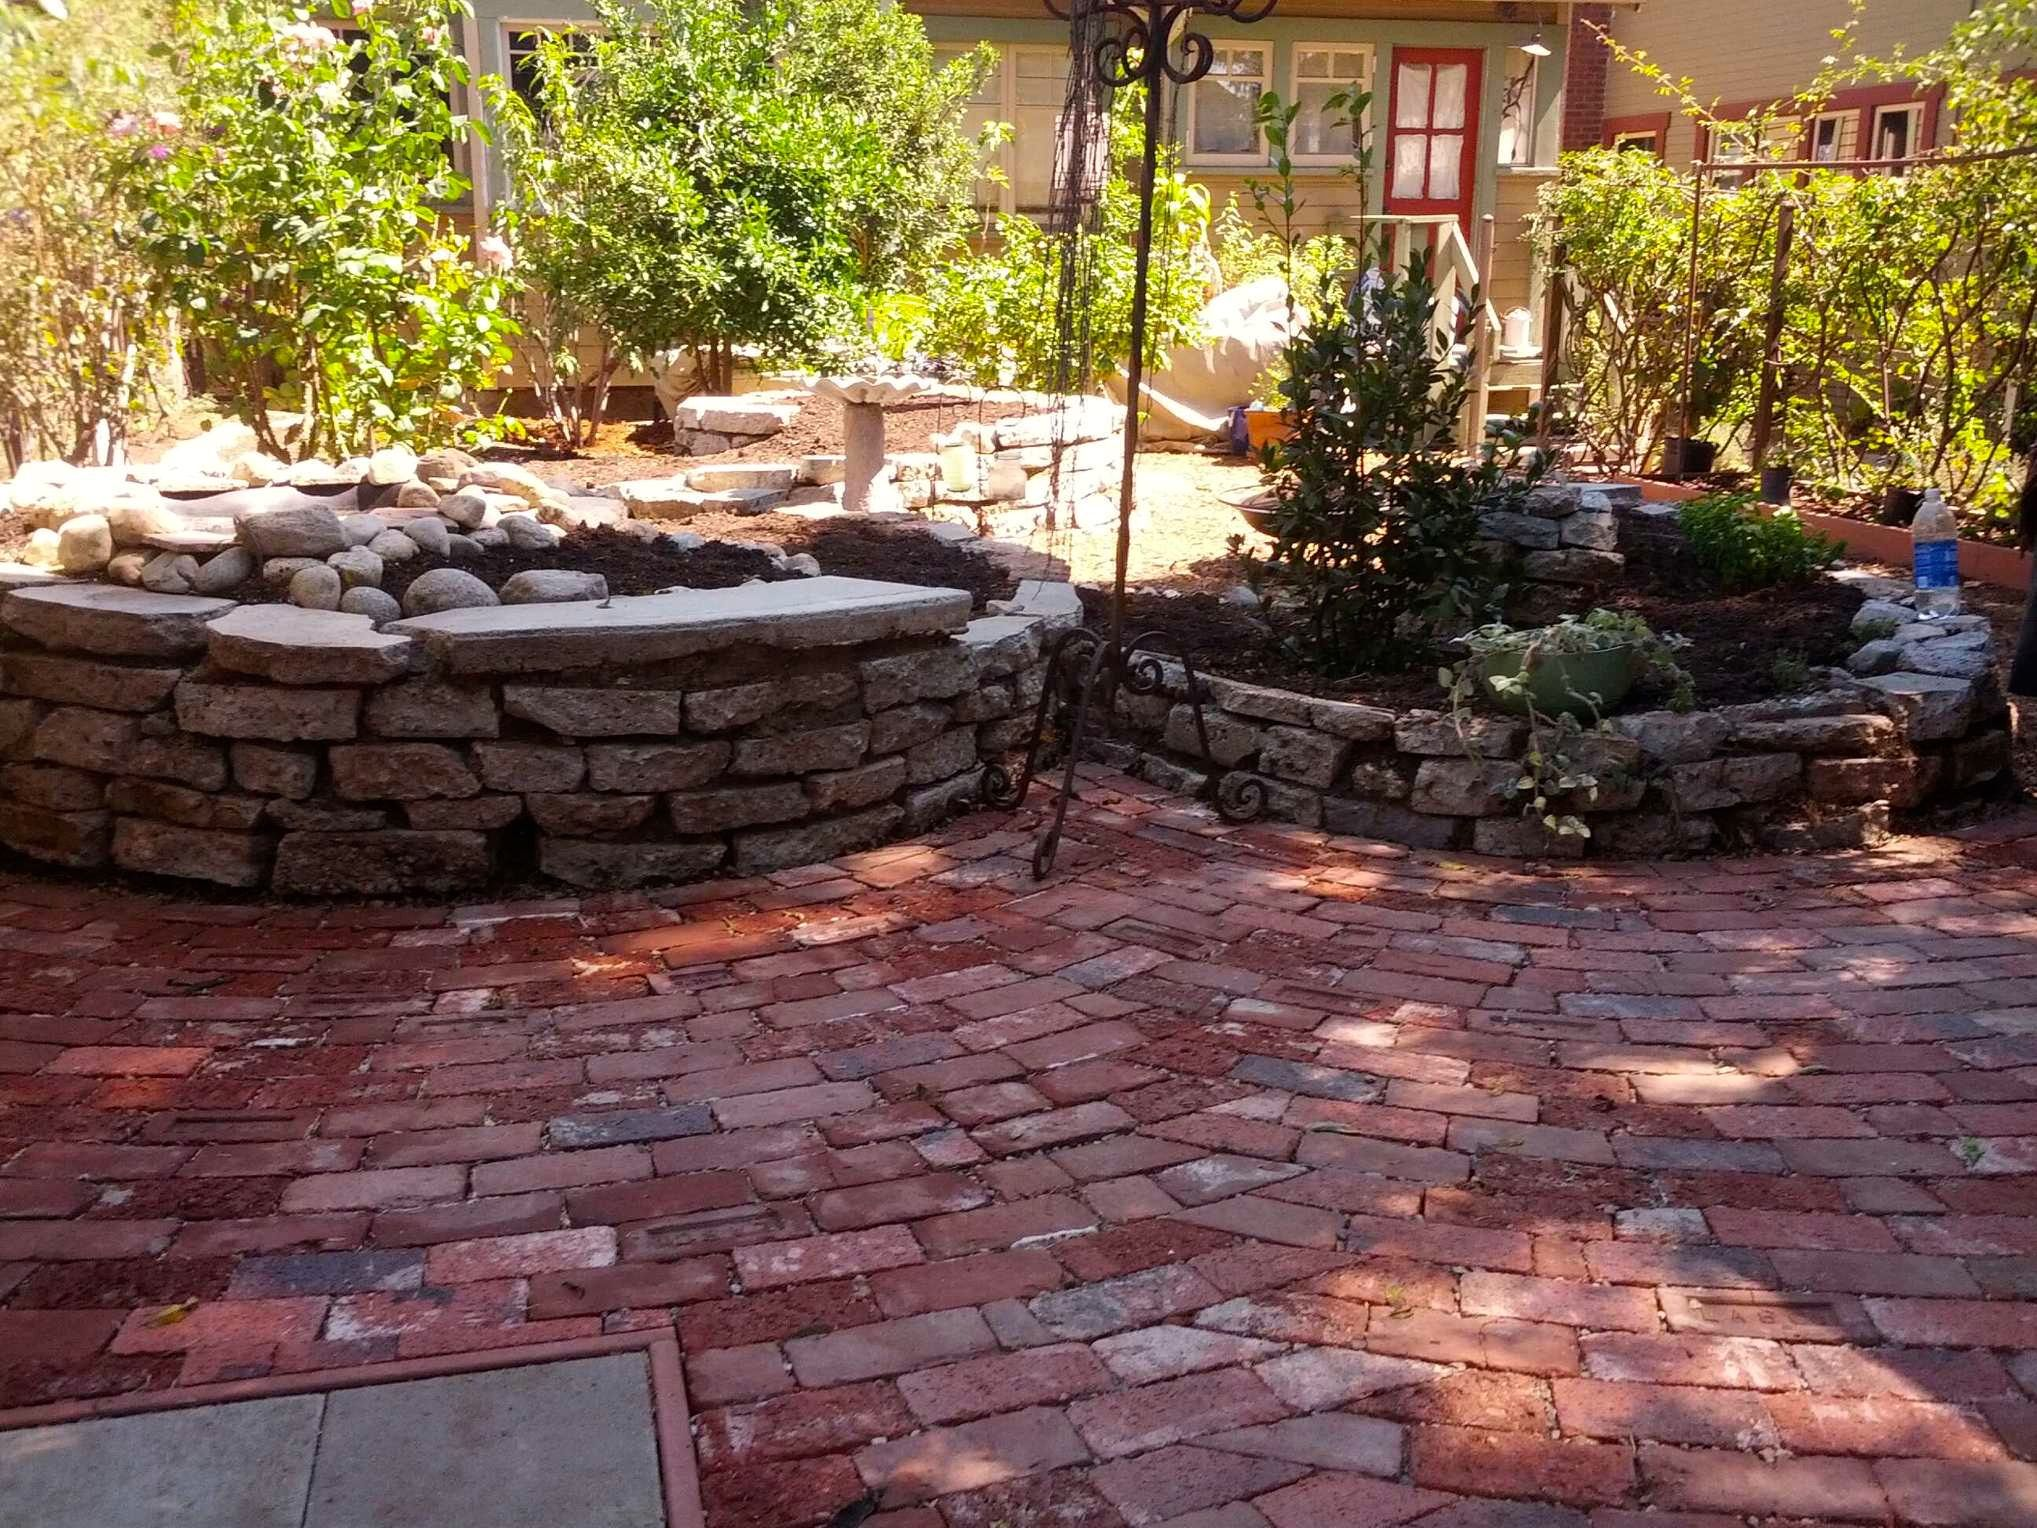 Brick Patterns For Patios Raised Beds And Brick Ripple Pattern Patio Design Build By